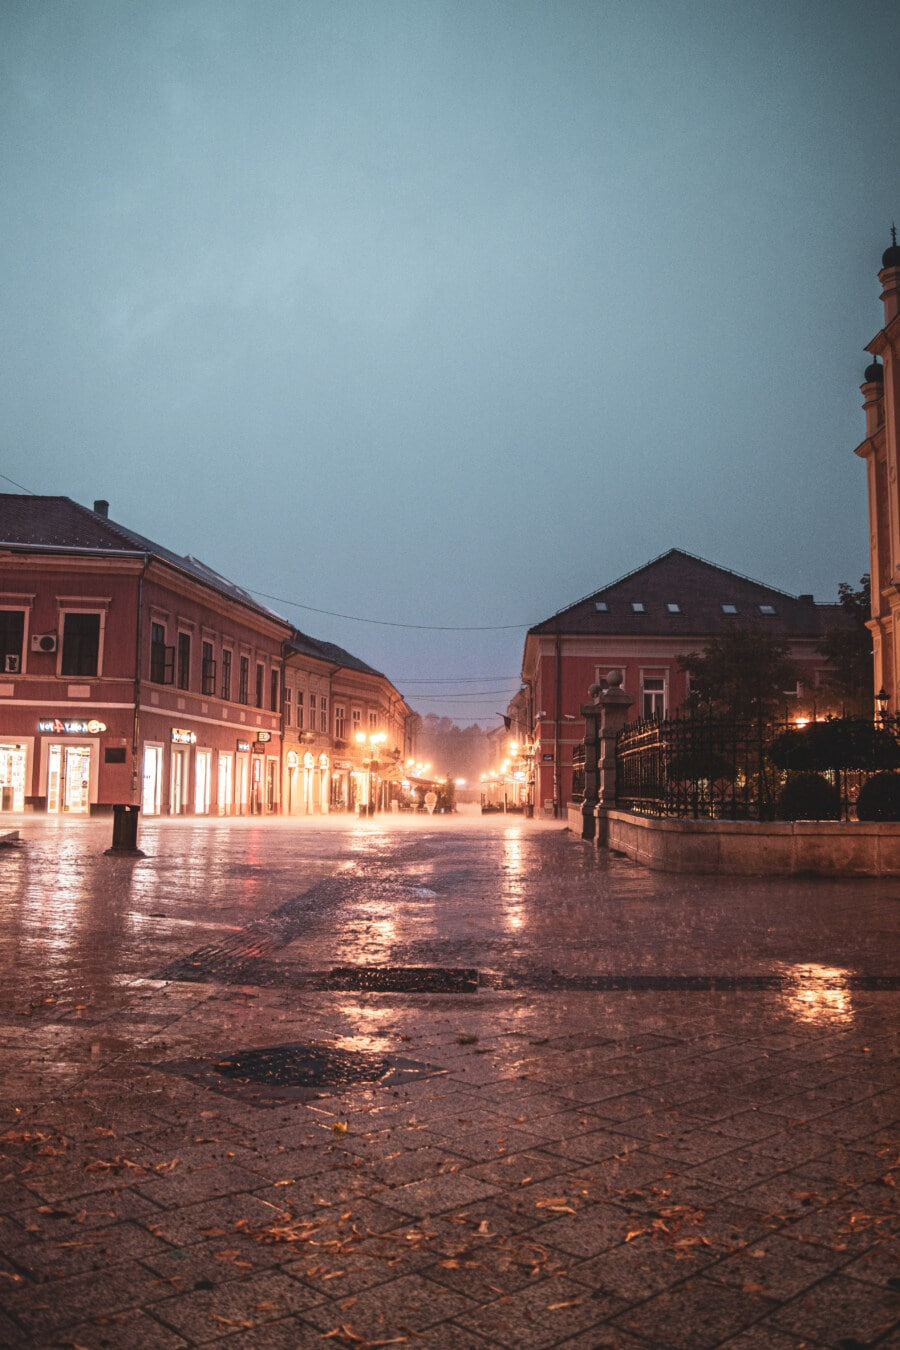 rain, bad weather, street, downtown, night, building, architecture, water, city, light